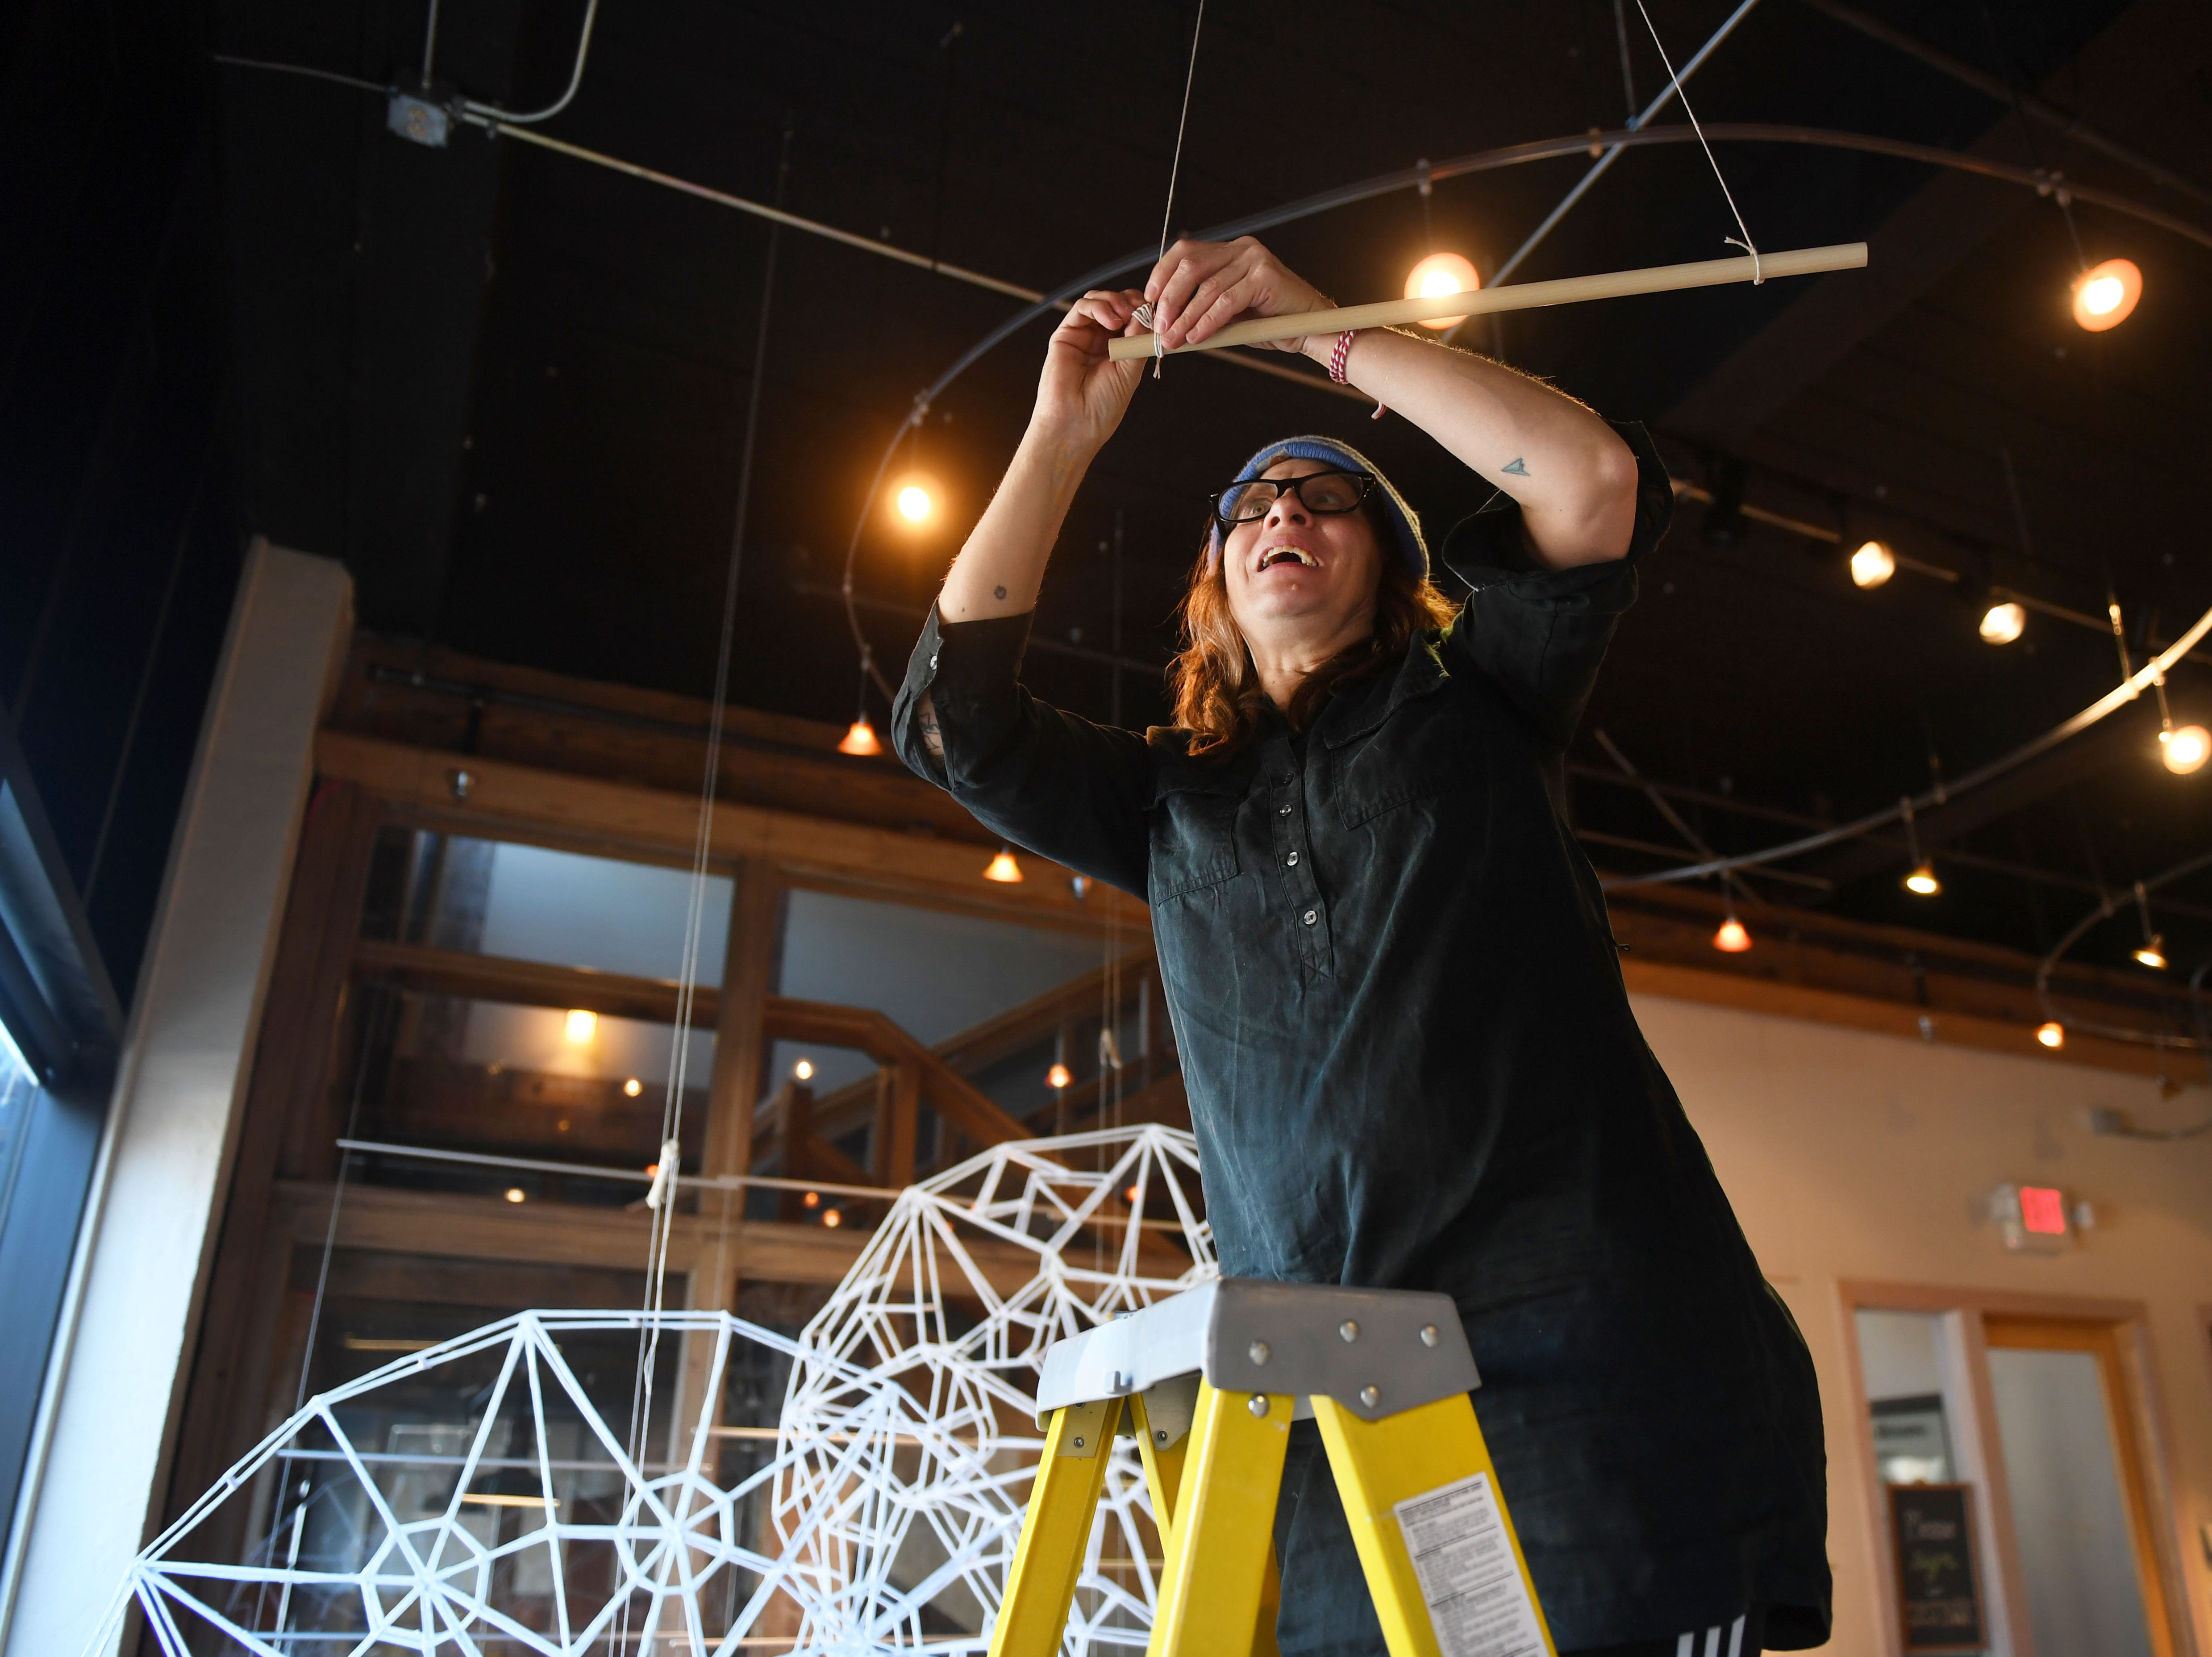 Working artists Amy Fill hangs string from the ceiling of Fresh Produce for her art installation in the upcoming Ipso gallery, Manualtronic, Saturday, Feb. 2, at Fresh Produce. The gallery is open Friday, Feb. 8, from 6 to 8 p.m. and will be up until the last Friday of March.